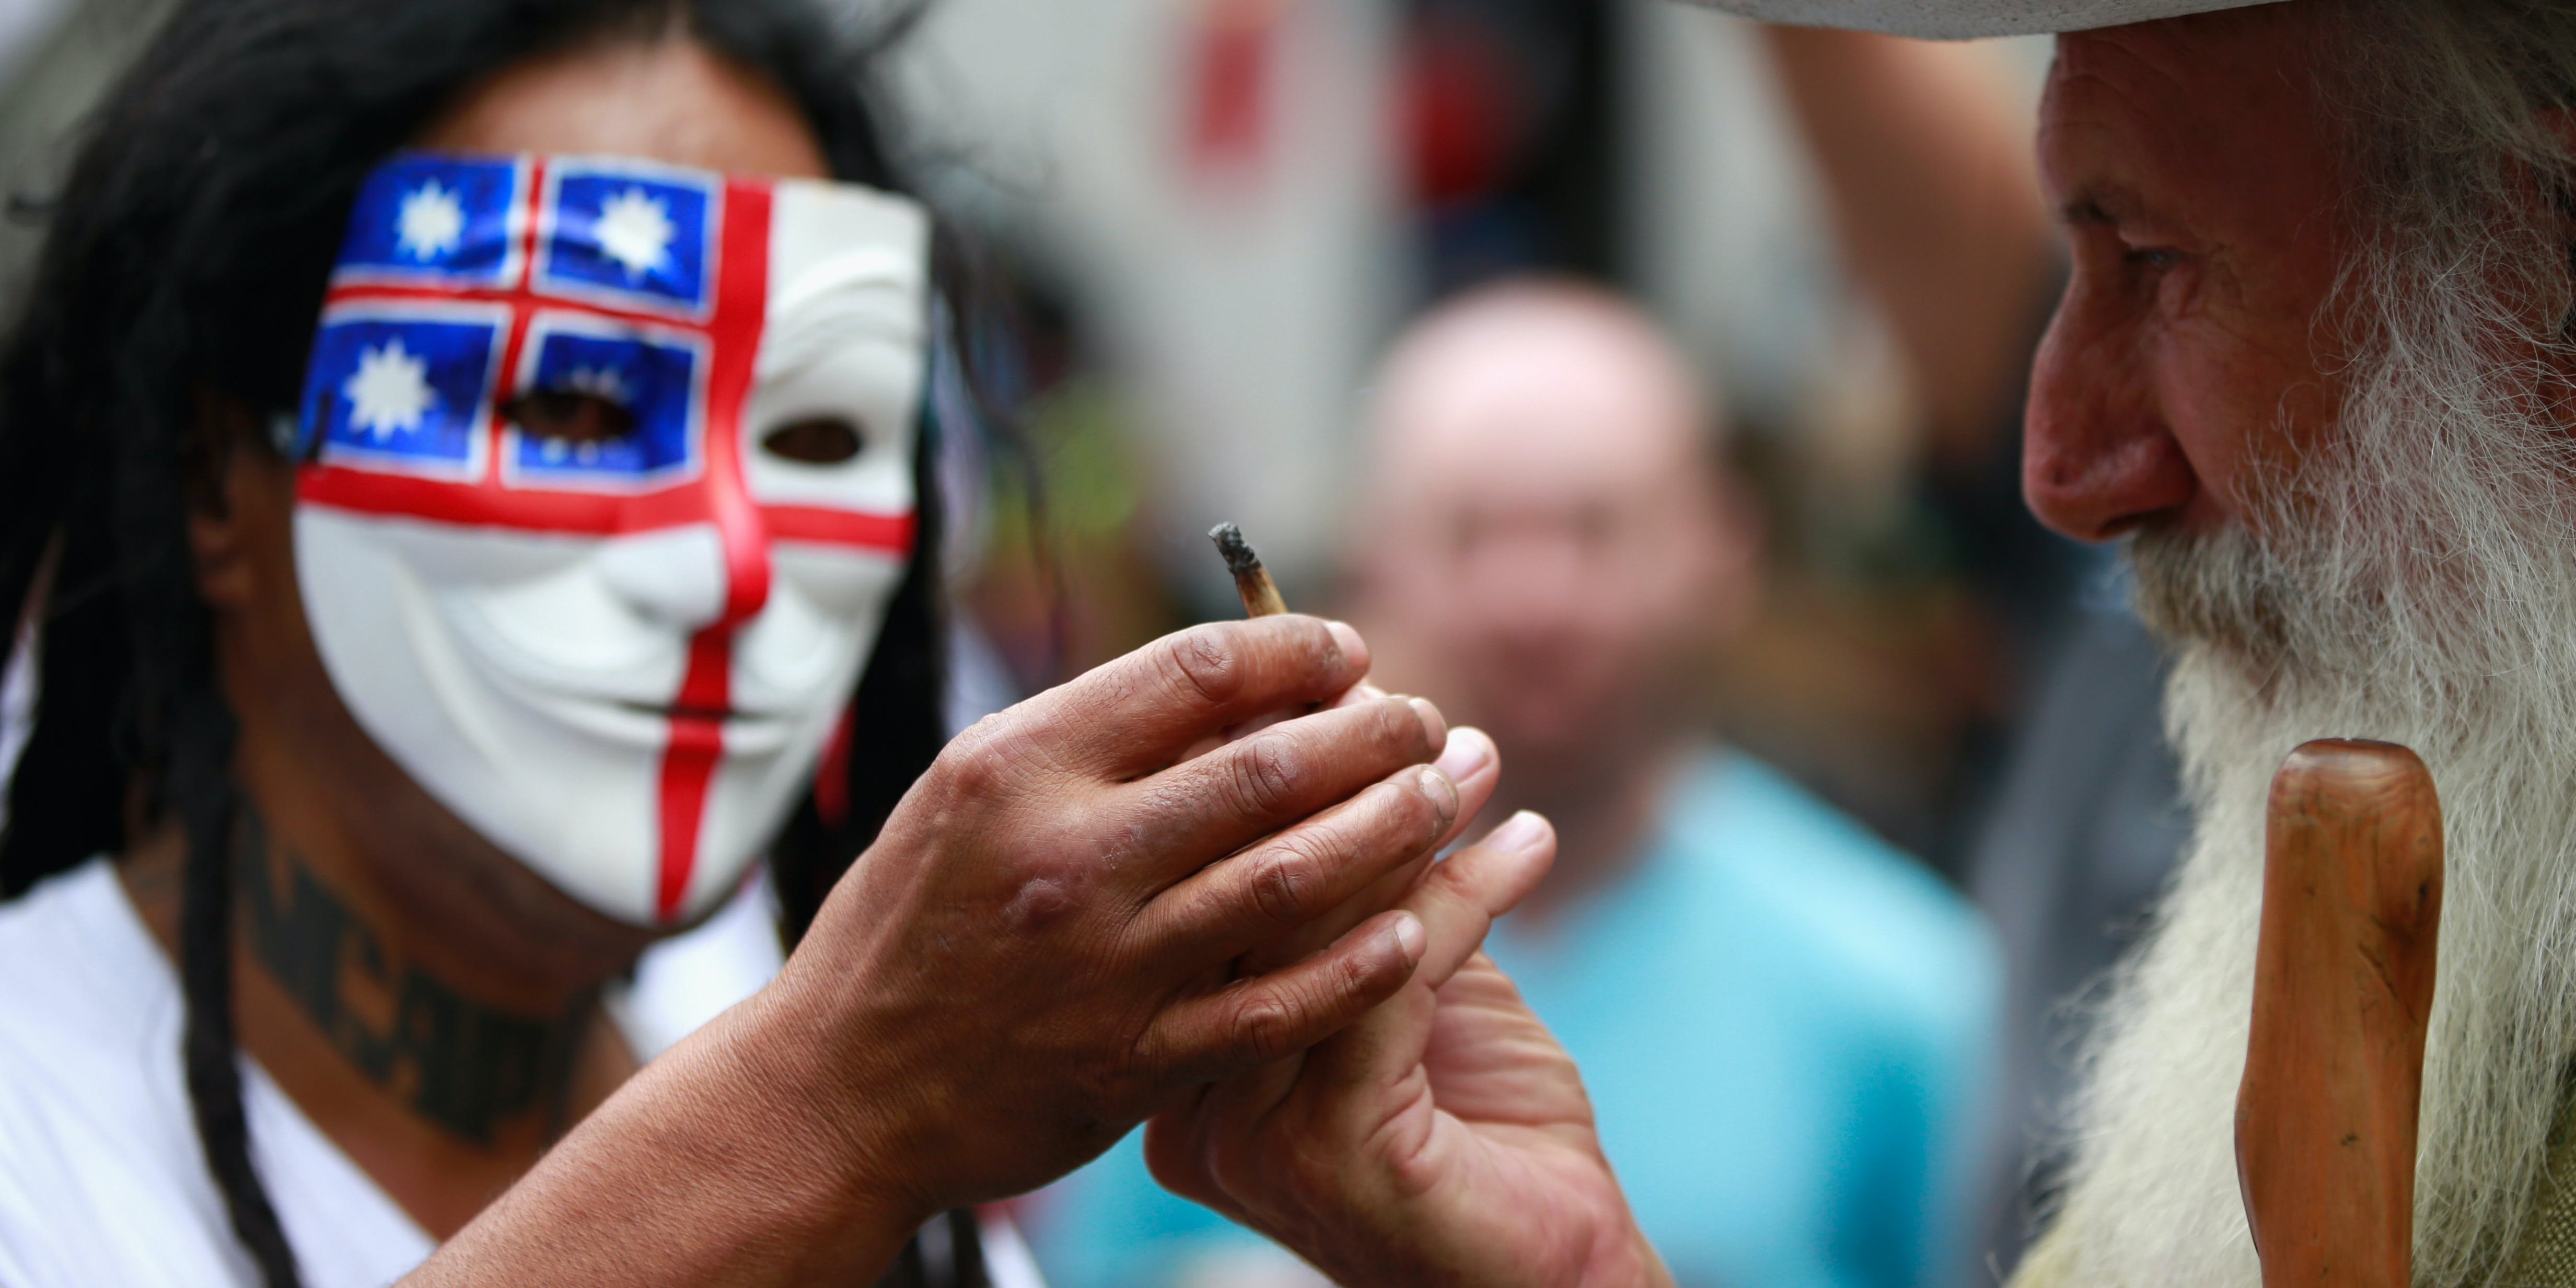 Cannabis protestors smoke outside the Sky City Convention in New Zealand. A man smokes a joint. A recent survey finds that New Zealand is overwhelmingly in support of cannabis reform.